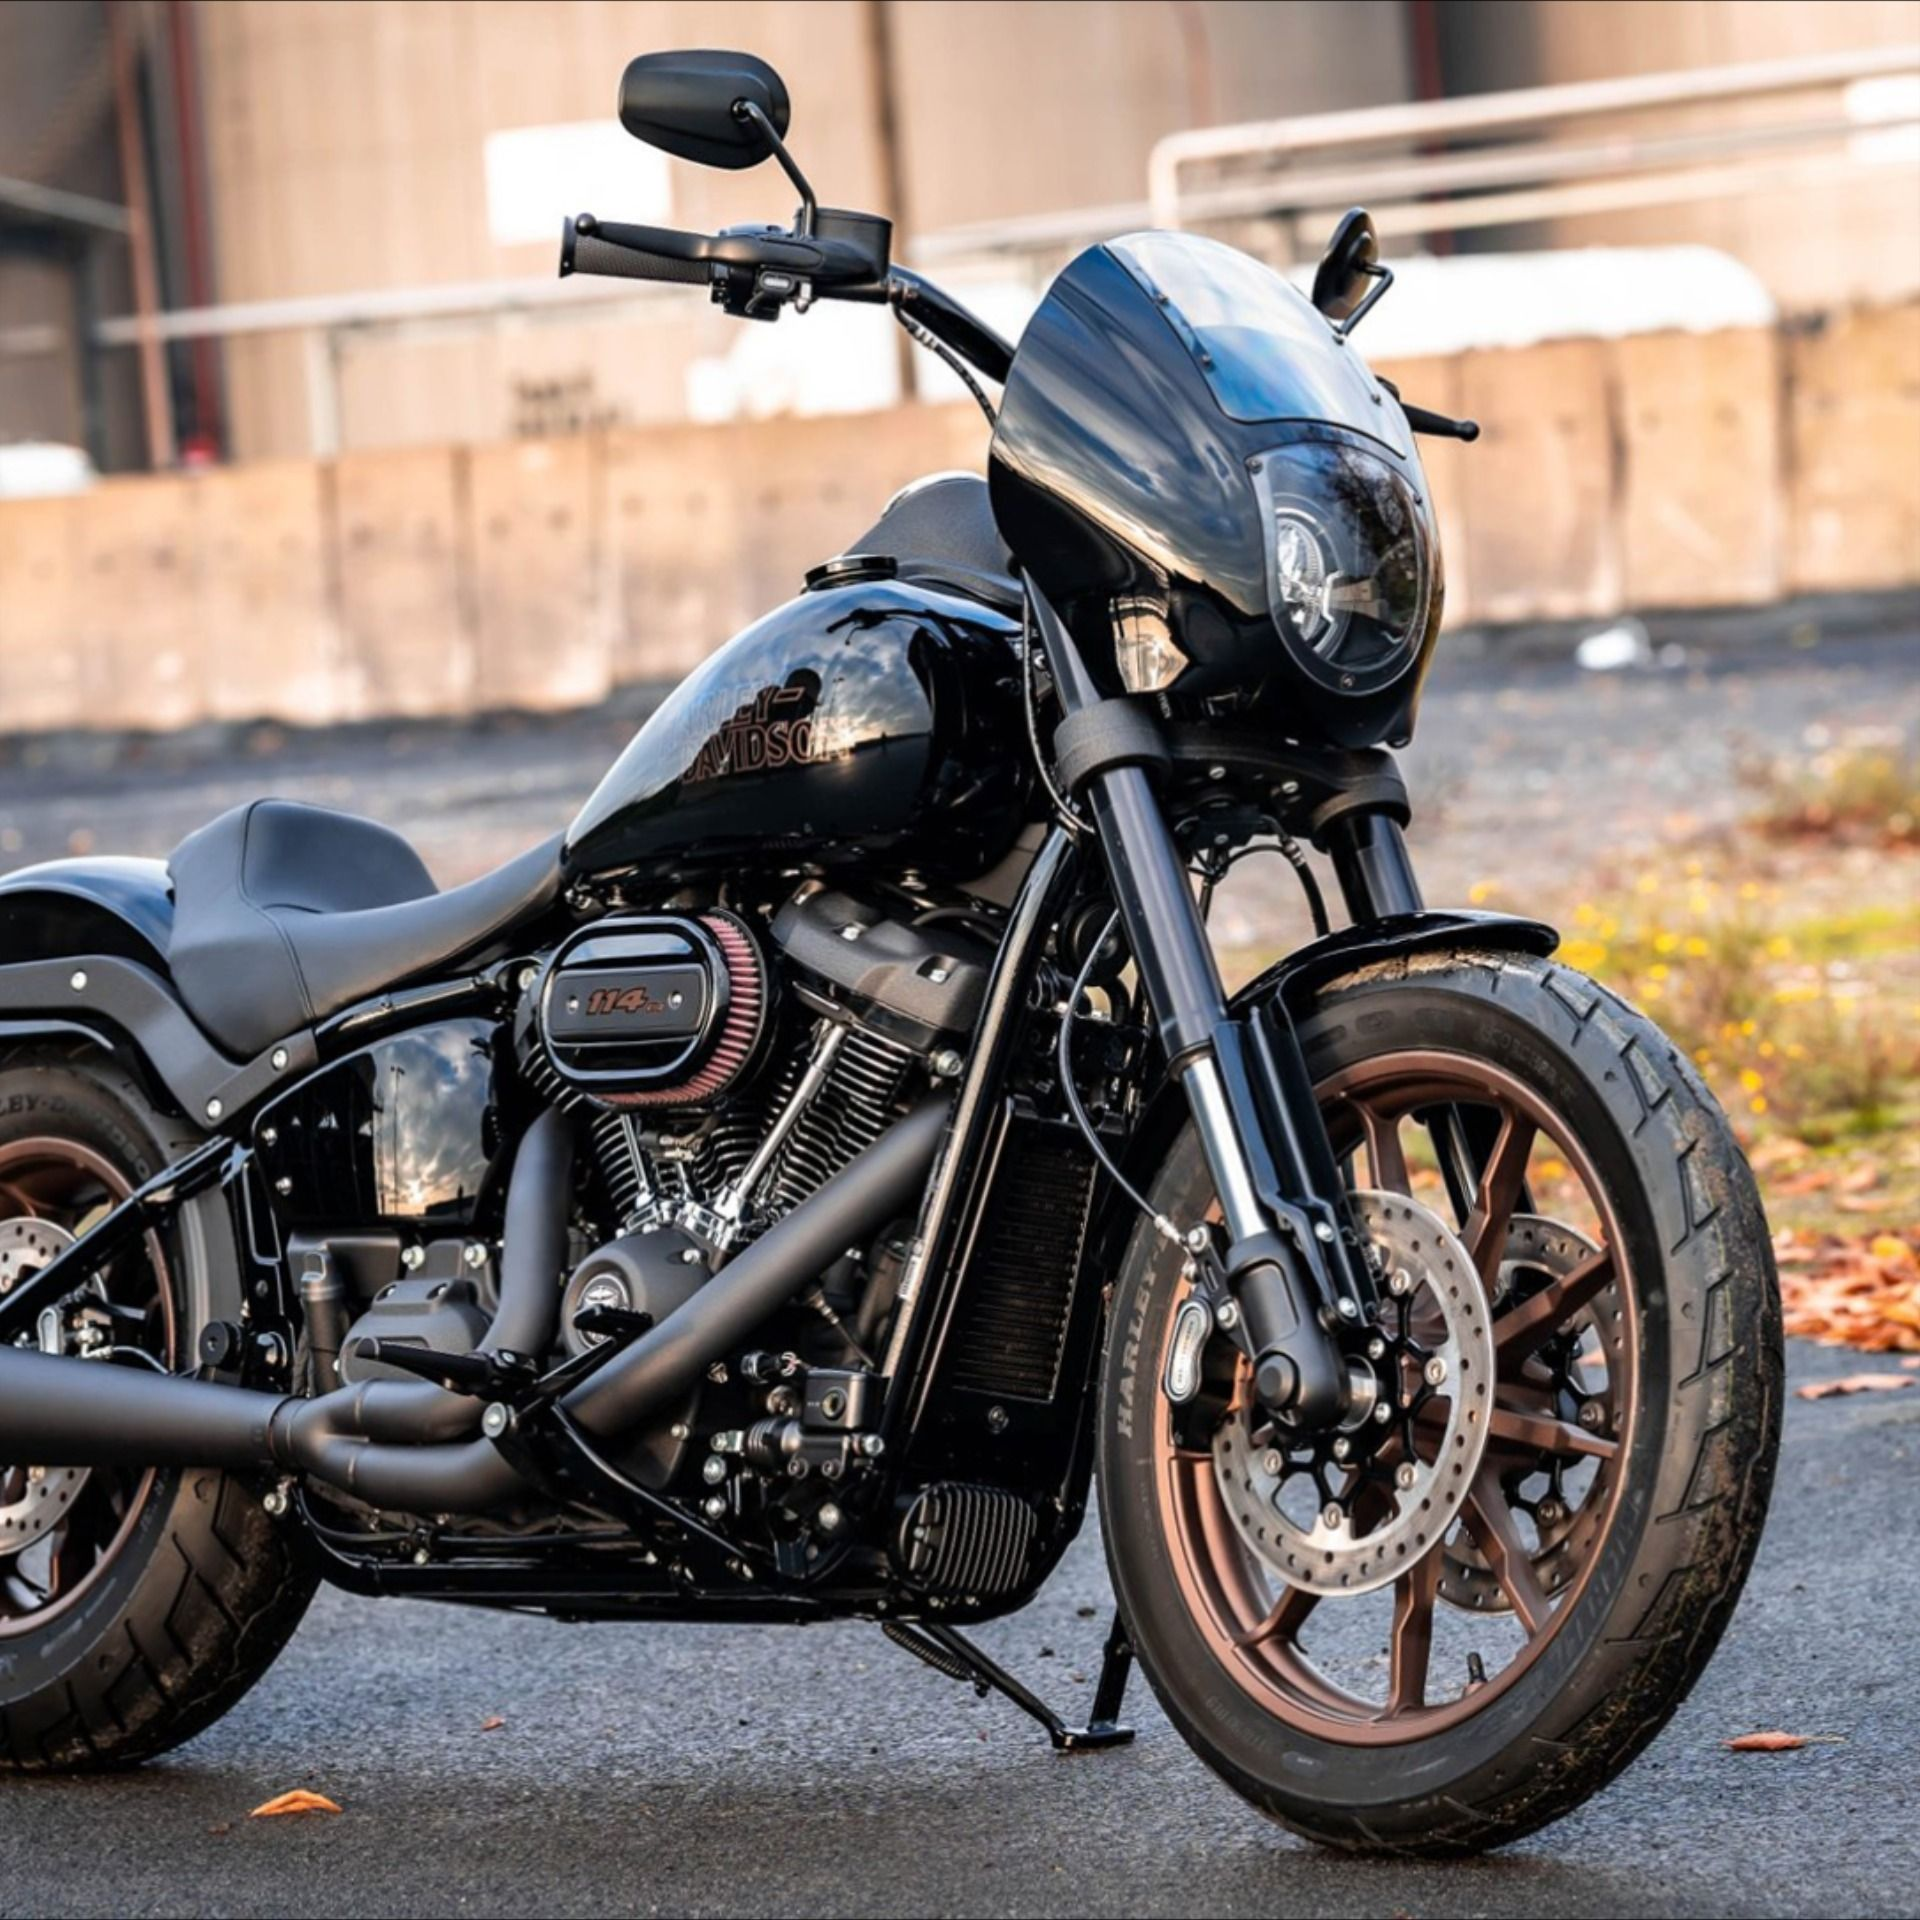 The Clubstyle Is Our First Low Rider S Conversion Based On Softail Frame At The Presentation Of The New Harley In 2020 Harley Davidson Model Lowriders Dyna Low Rider